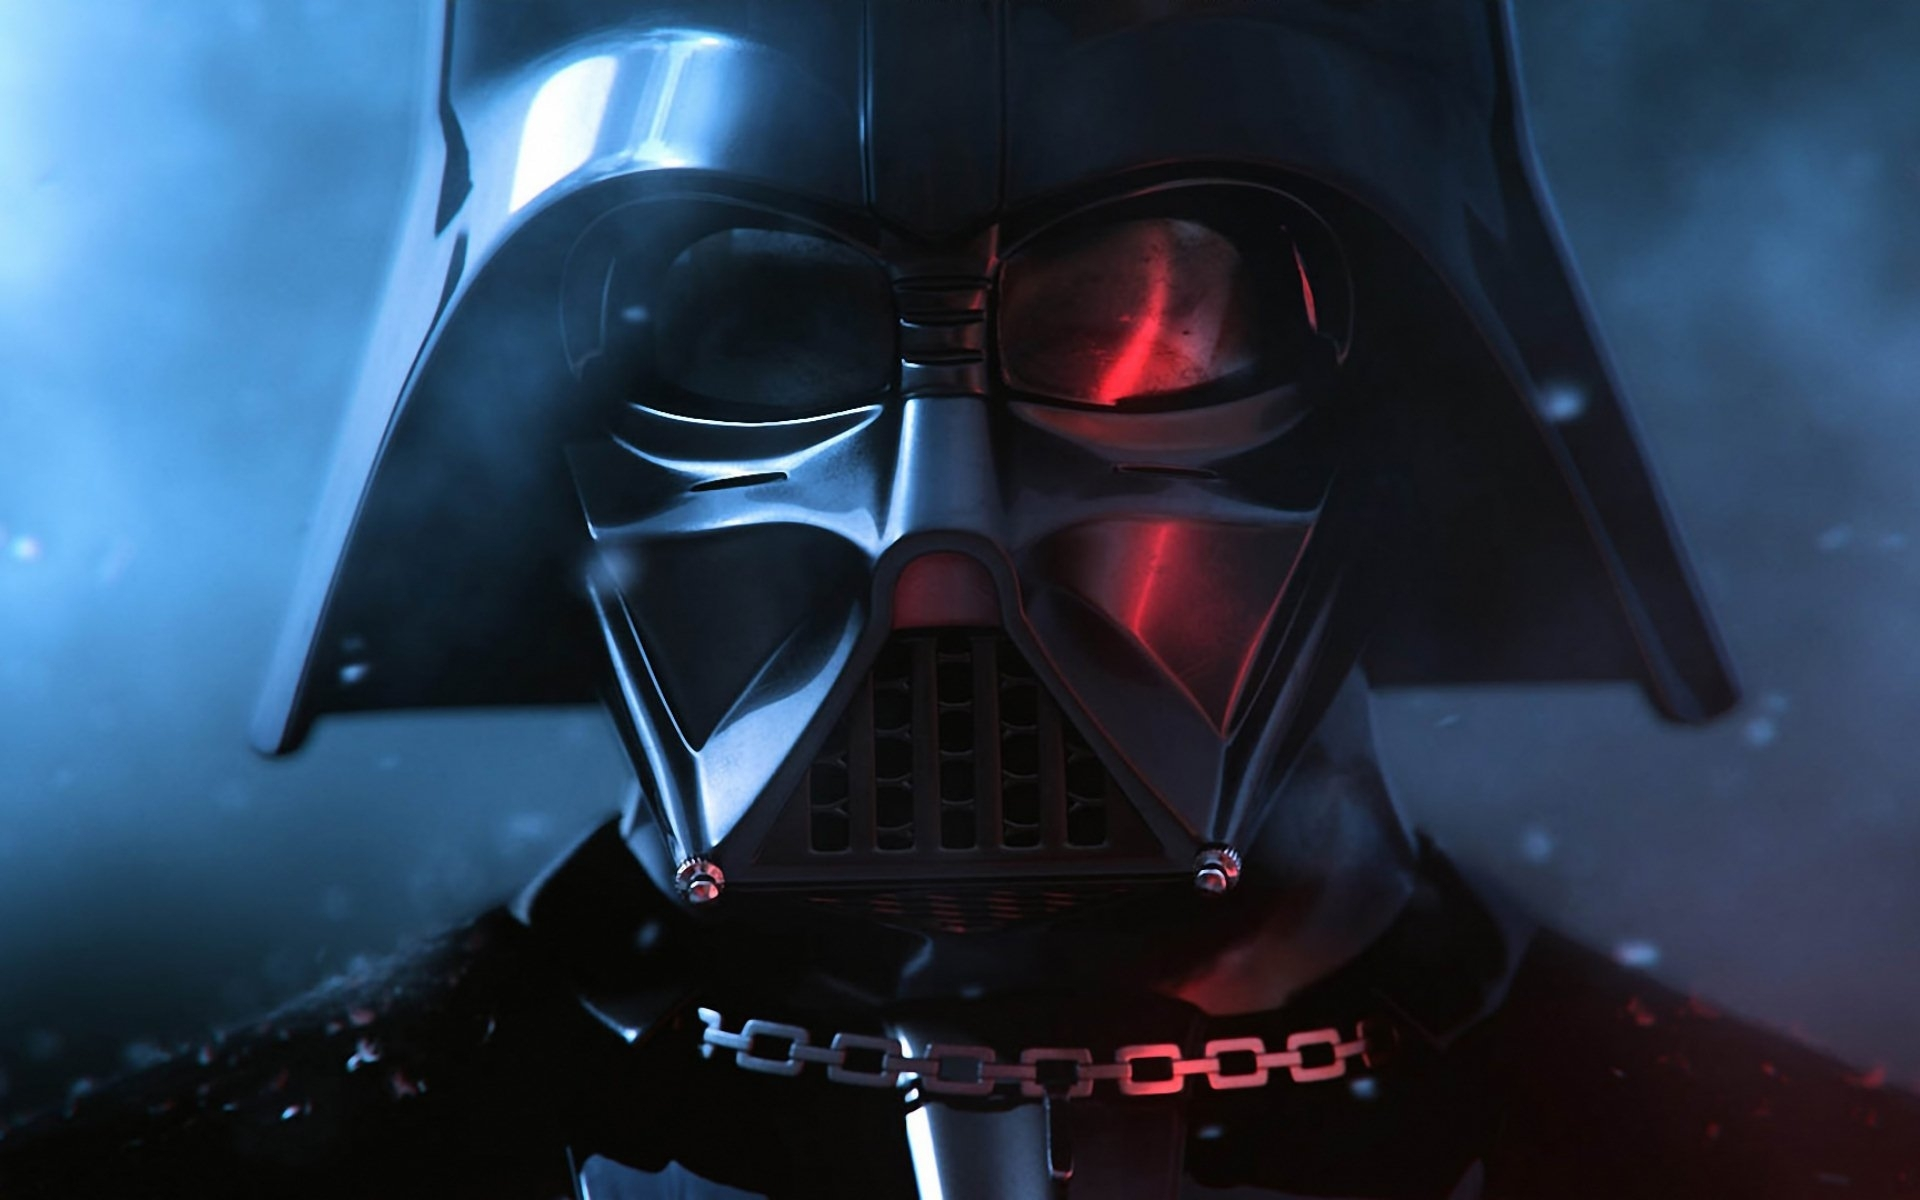 307 darth vader fonds d'écran hd | arrière-plans - wallpaper abyss